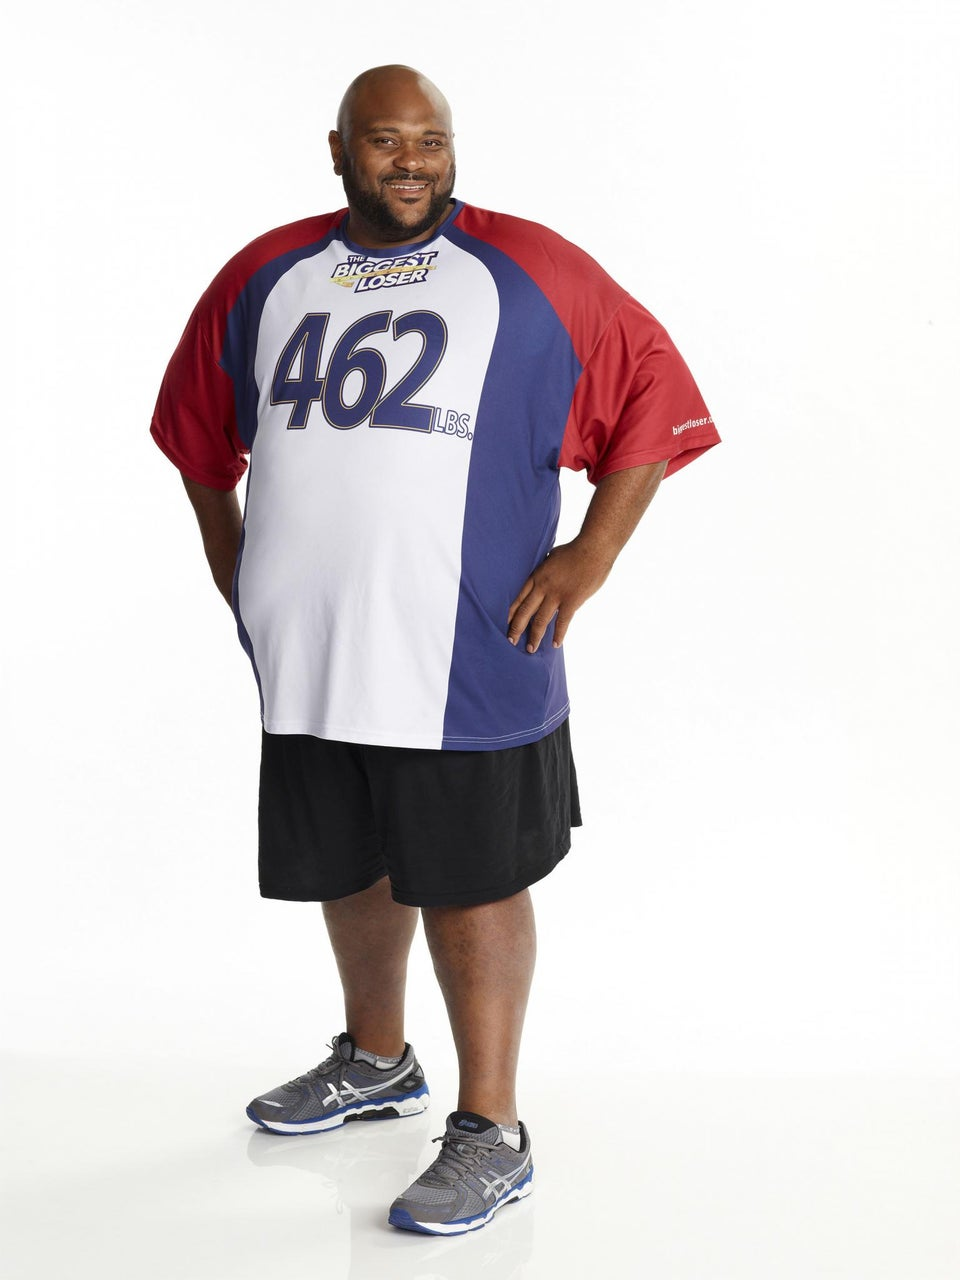 Ruben Studdard Diagnosed with Diabetes on 'Biggest Loser'